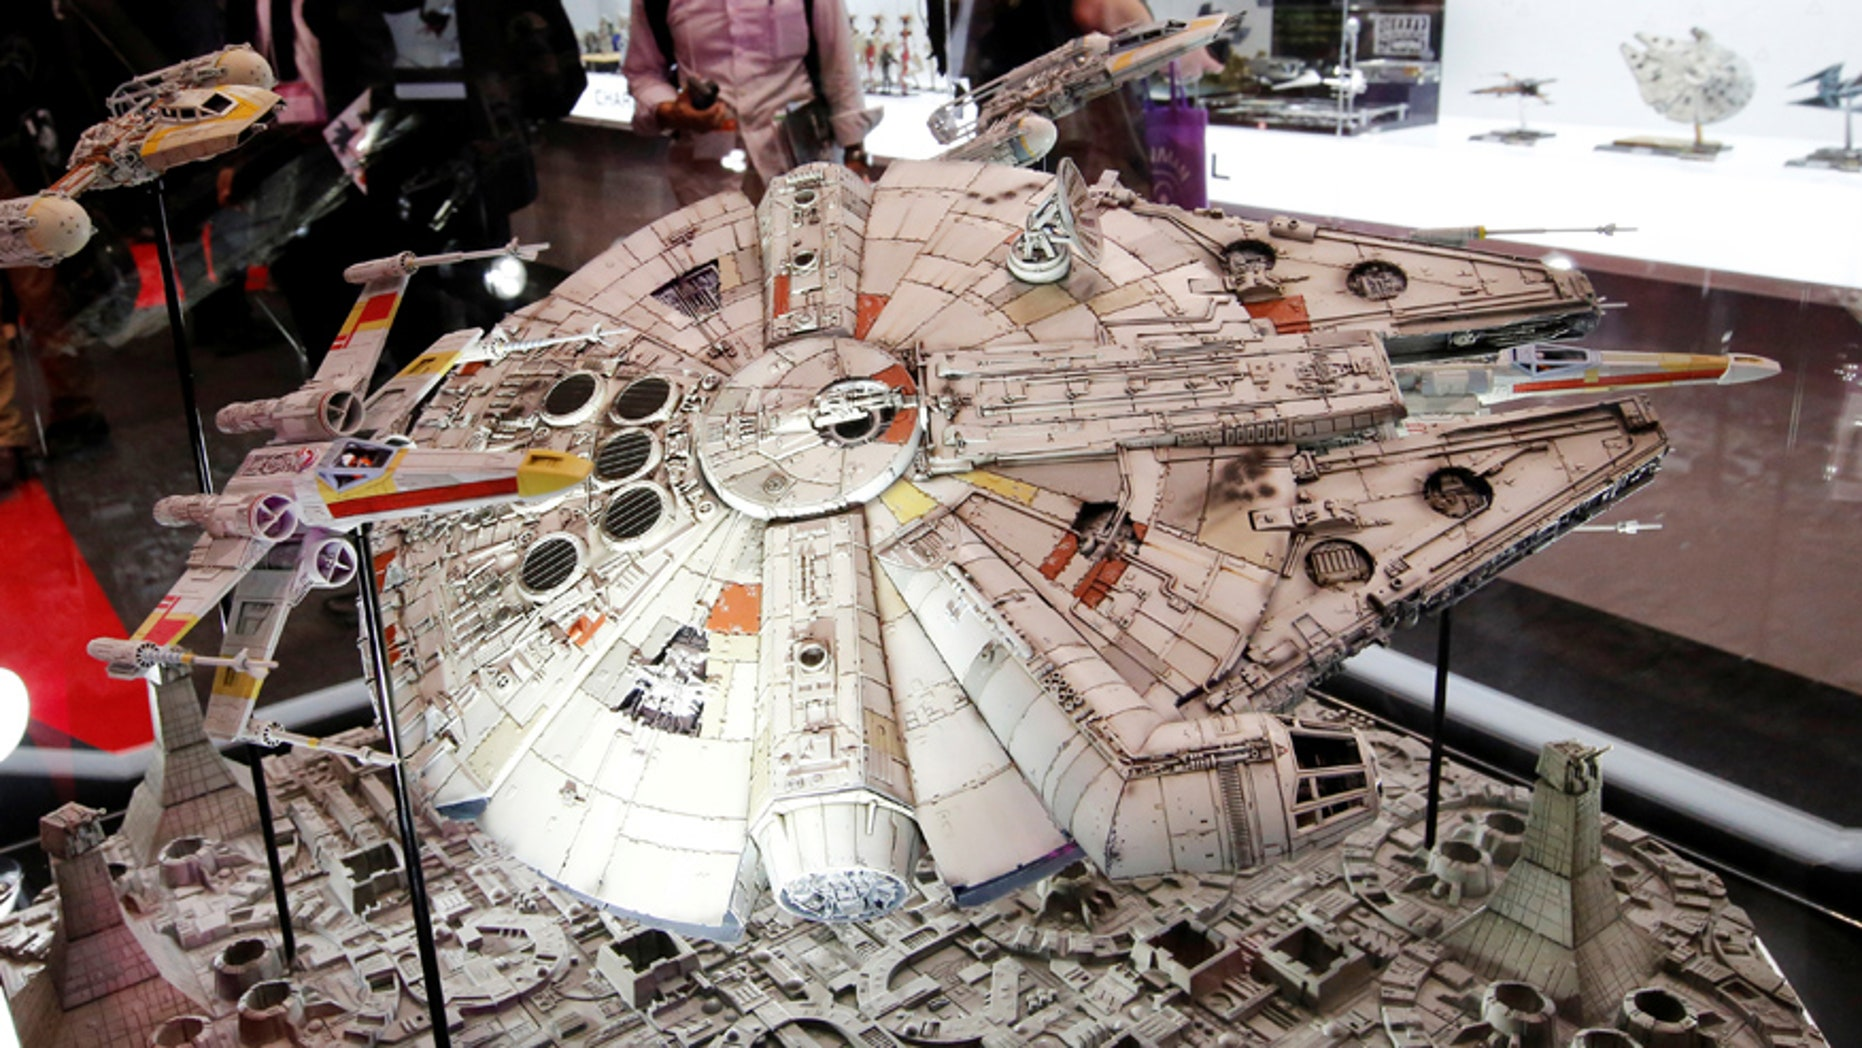 """File photo-Bandai Co's 1/72 scale plastic model of the Millennium Falcon from """"Star Wars"""" is displayed at the International Tokyo Toy Show in Tokyo, Japan June 9, 2016. (REUTERS/Toru Hanai)"""